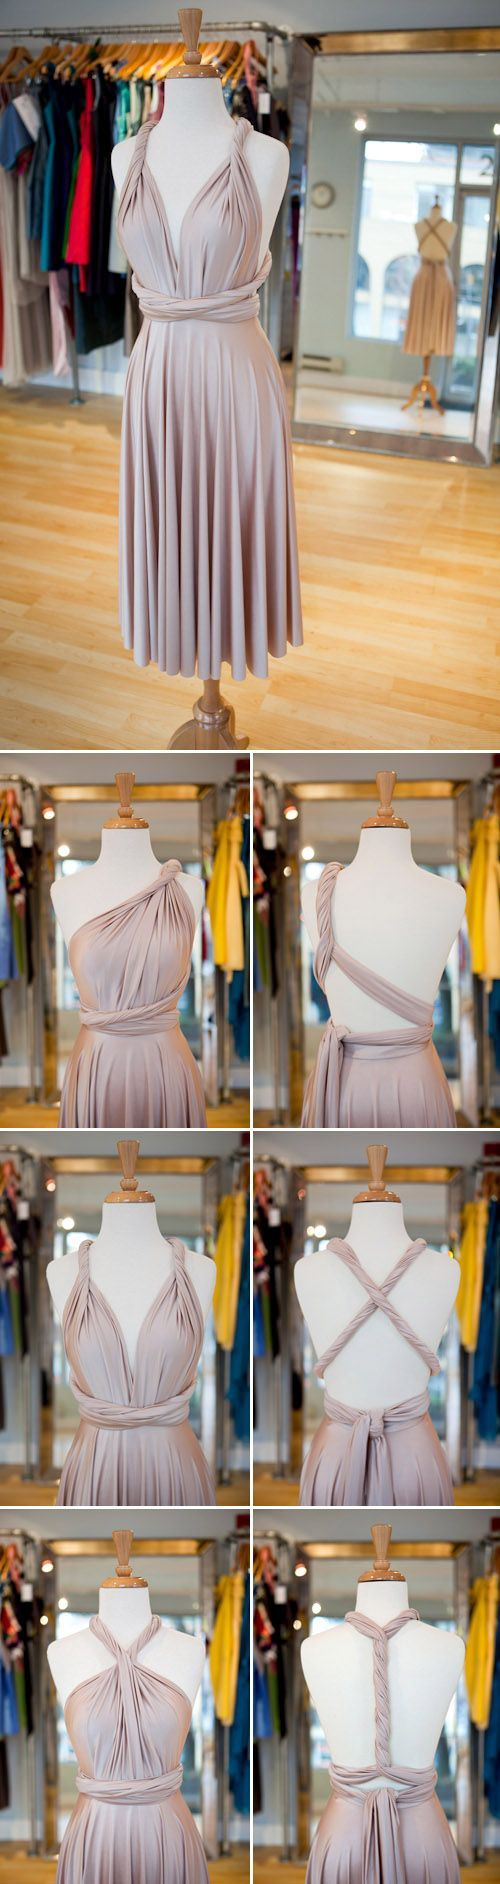 blush prom dresses, v neck prom dresses, long prom dresses, multi wear prom dresses, convertible dresses